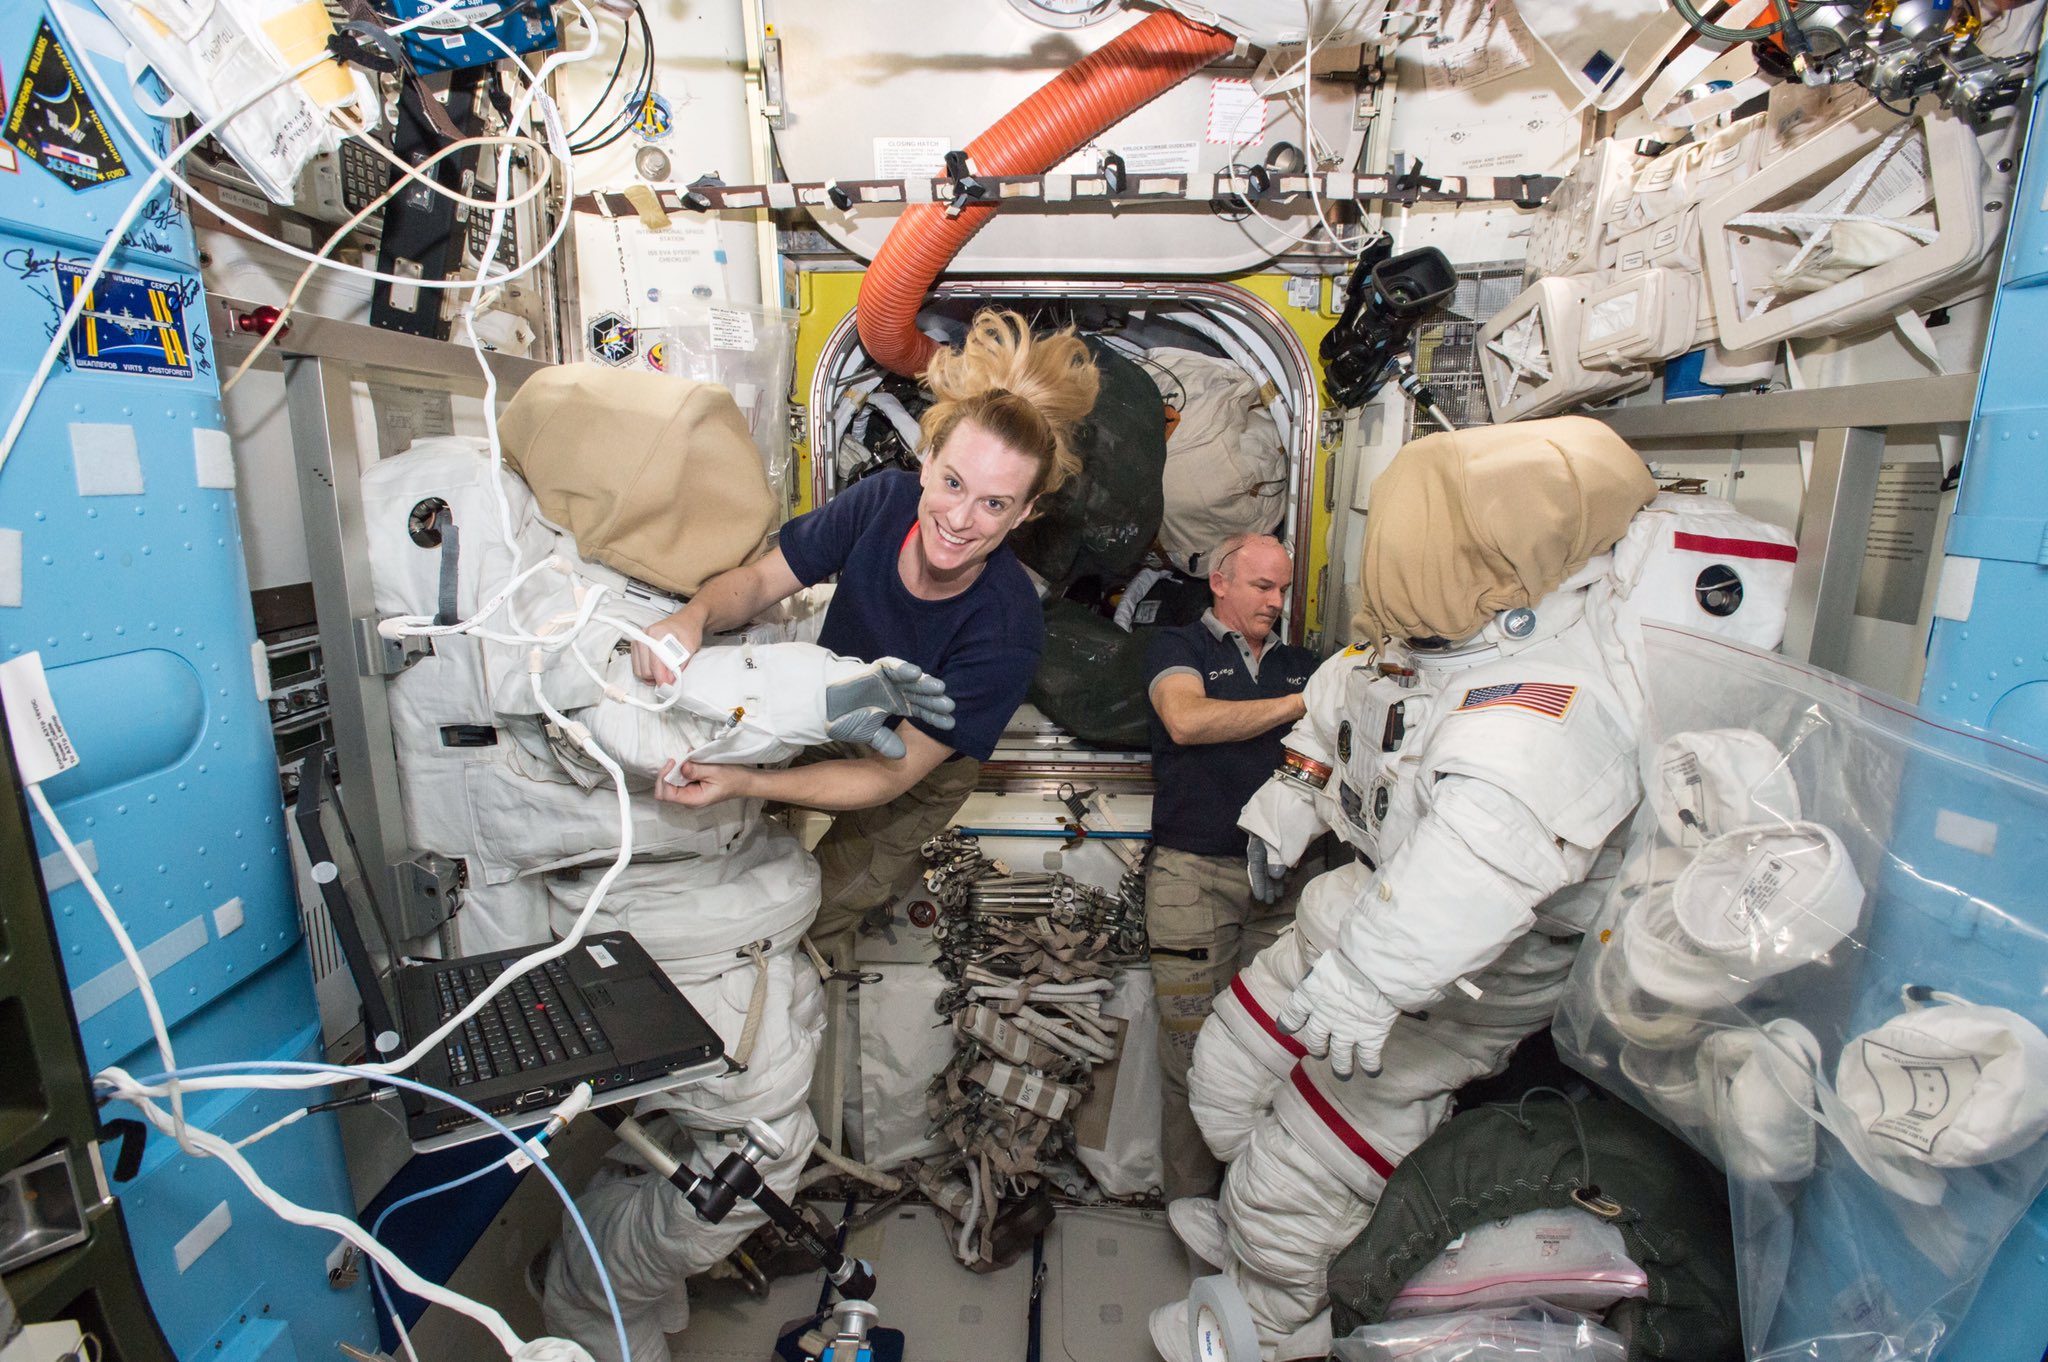 Kate Rubins (left) and Jeff Williams (right) work with spacesuits aboard the International Space Station. Credit: NASA